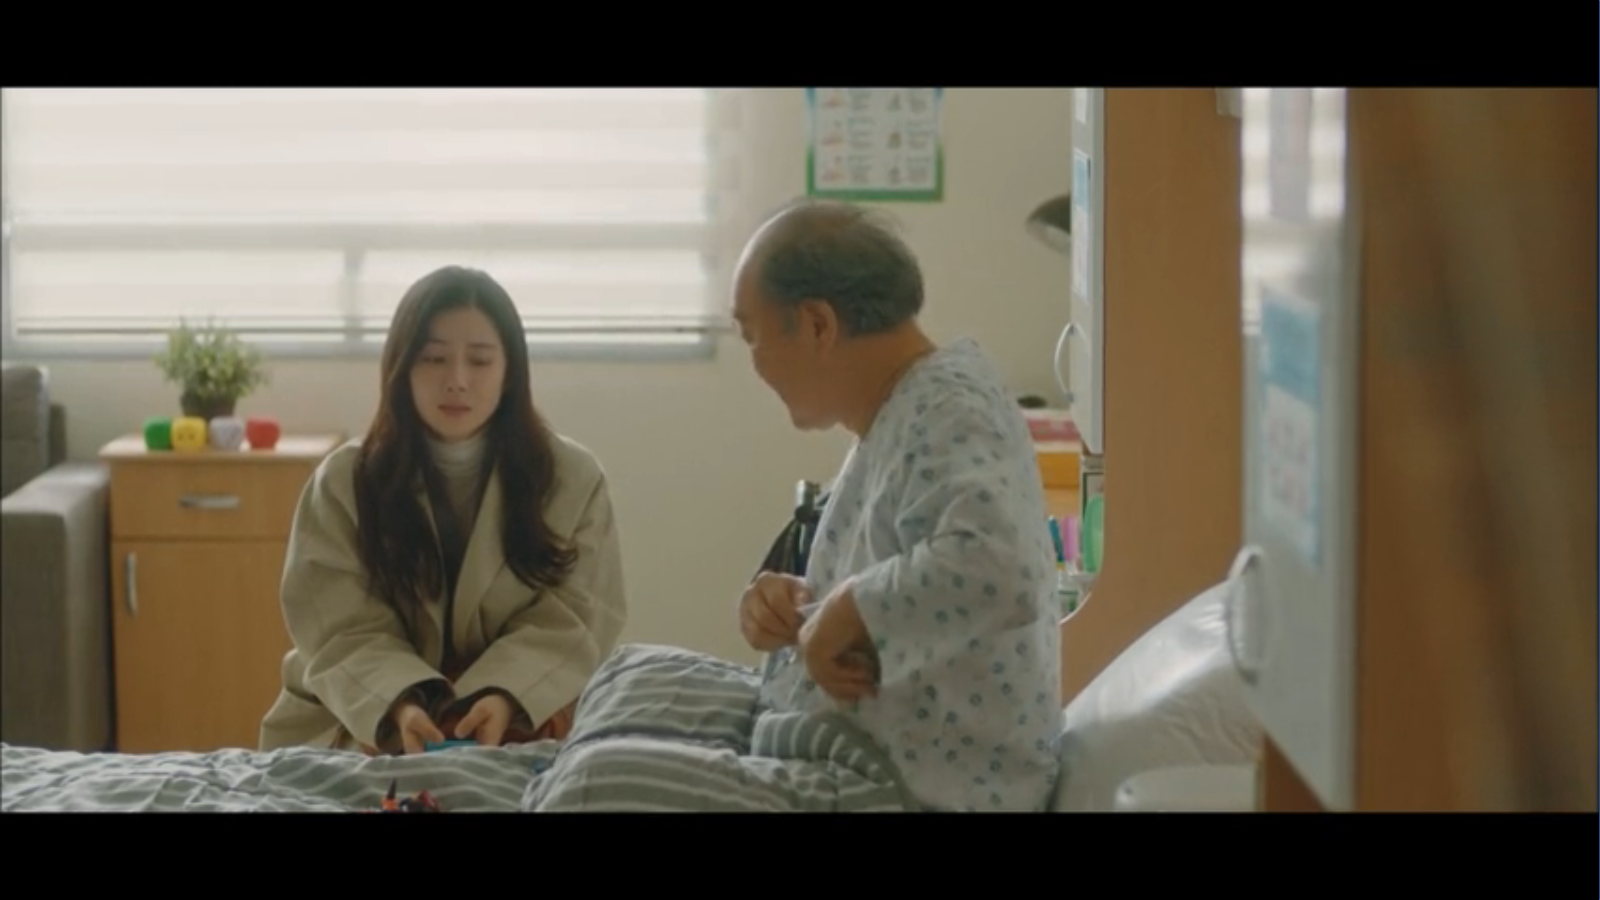 When My Love Blooms Episode 2 Yoon Ji-soo visiting her father